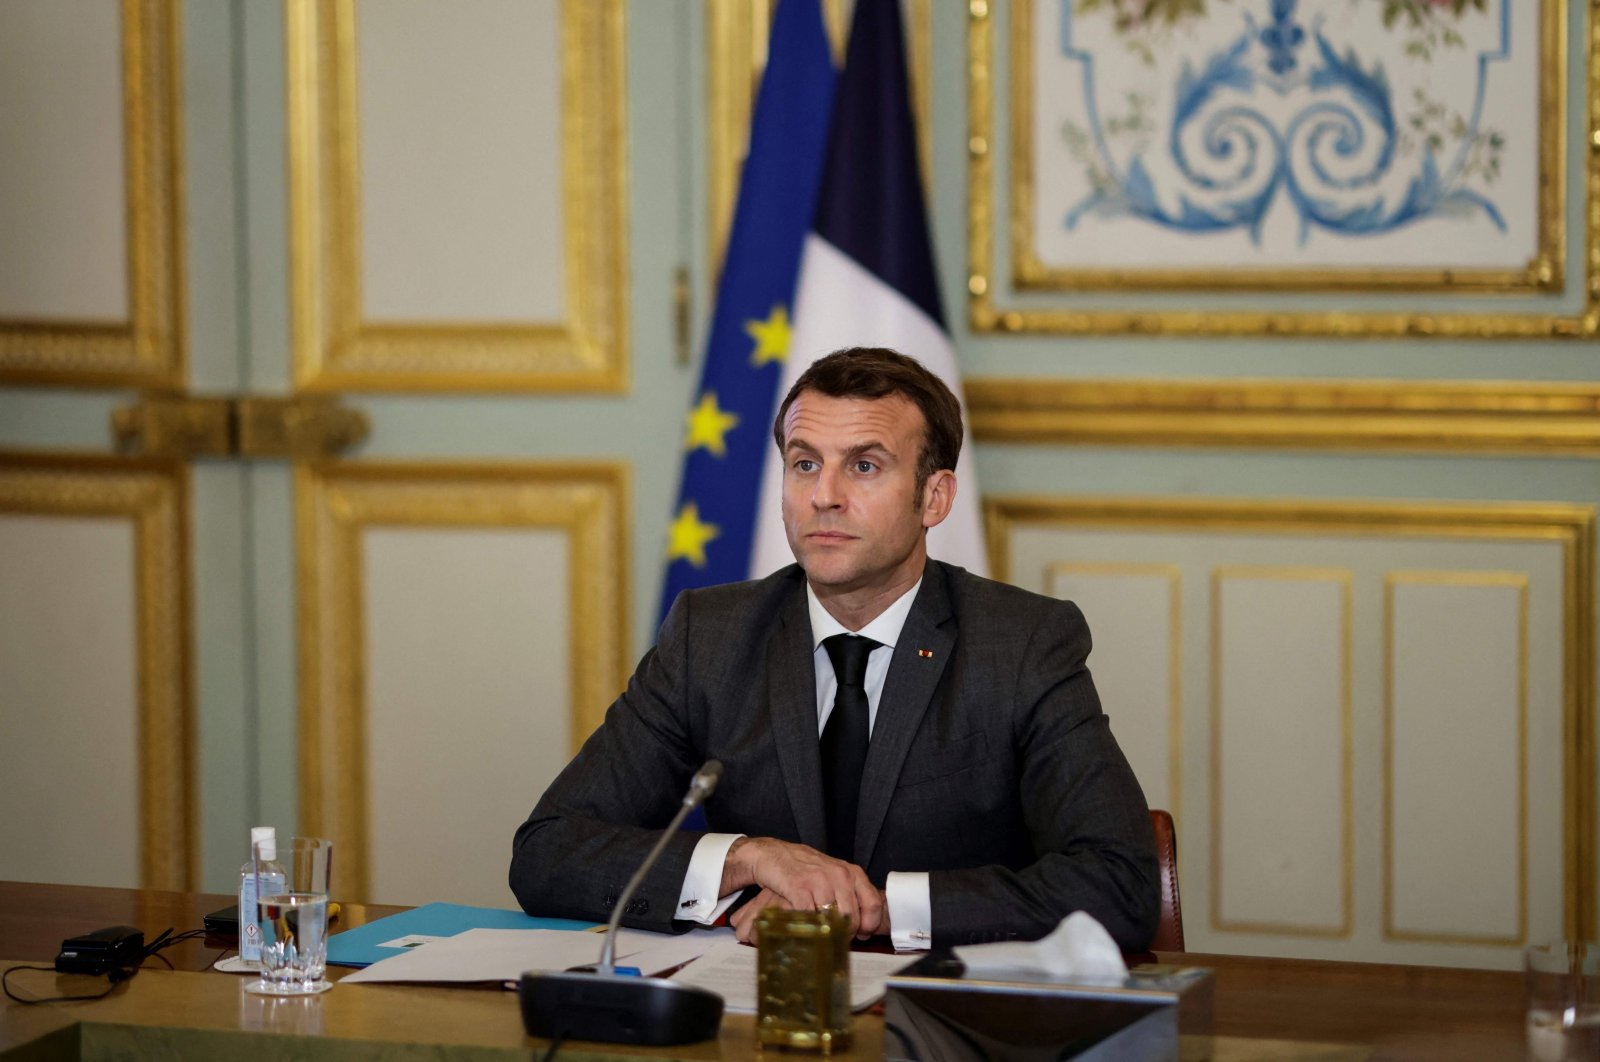 French President Emmanuel Macron reacts as he takes part in the Act-A videoconference meeting with the African Union board at the Elysee Palace, in Paris, on March 3, 2021. (AFP Photo)